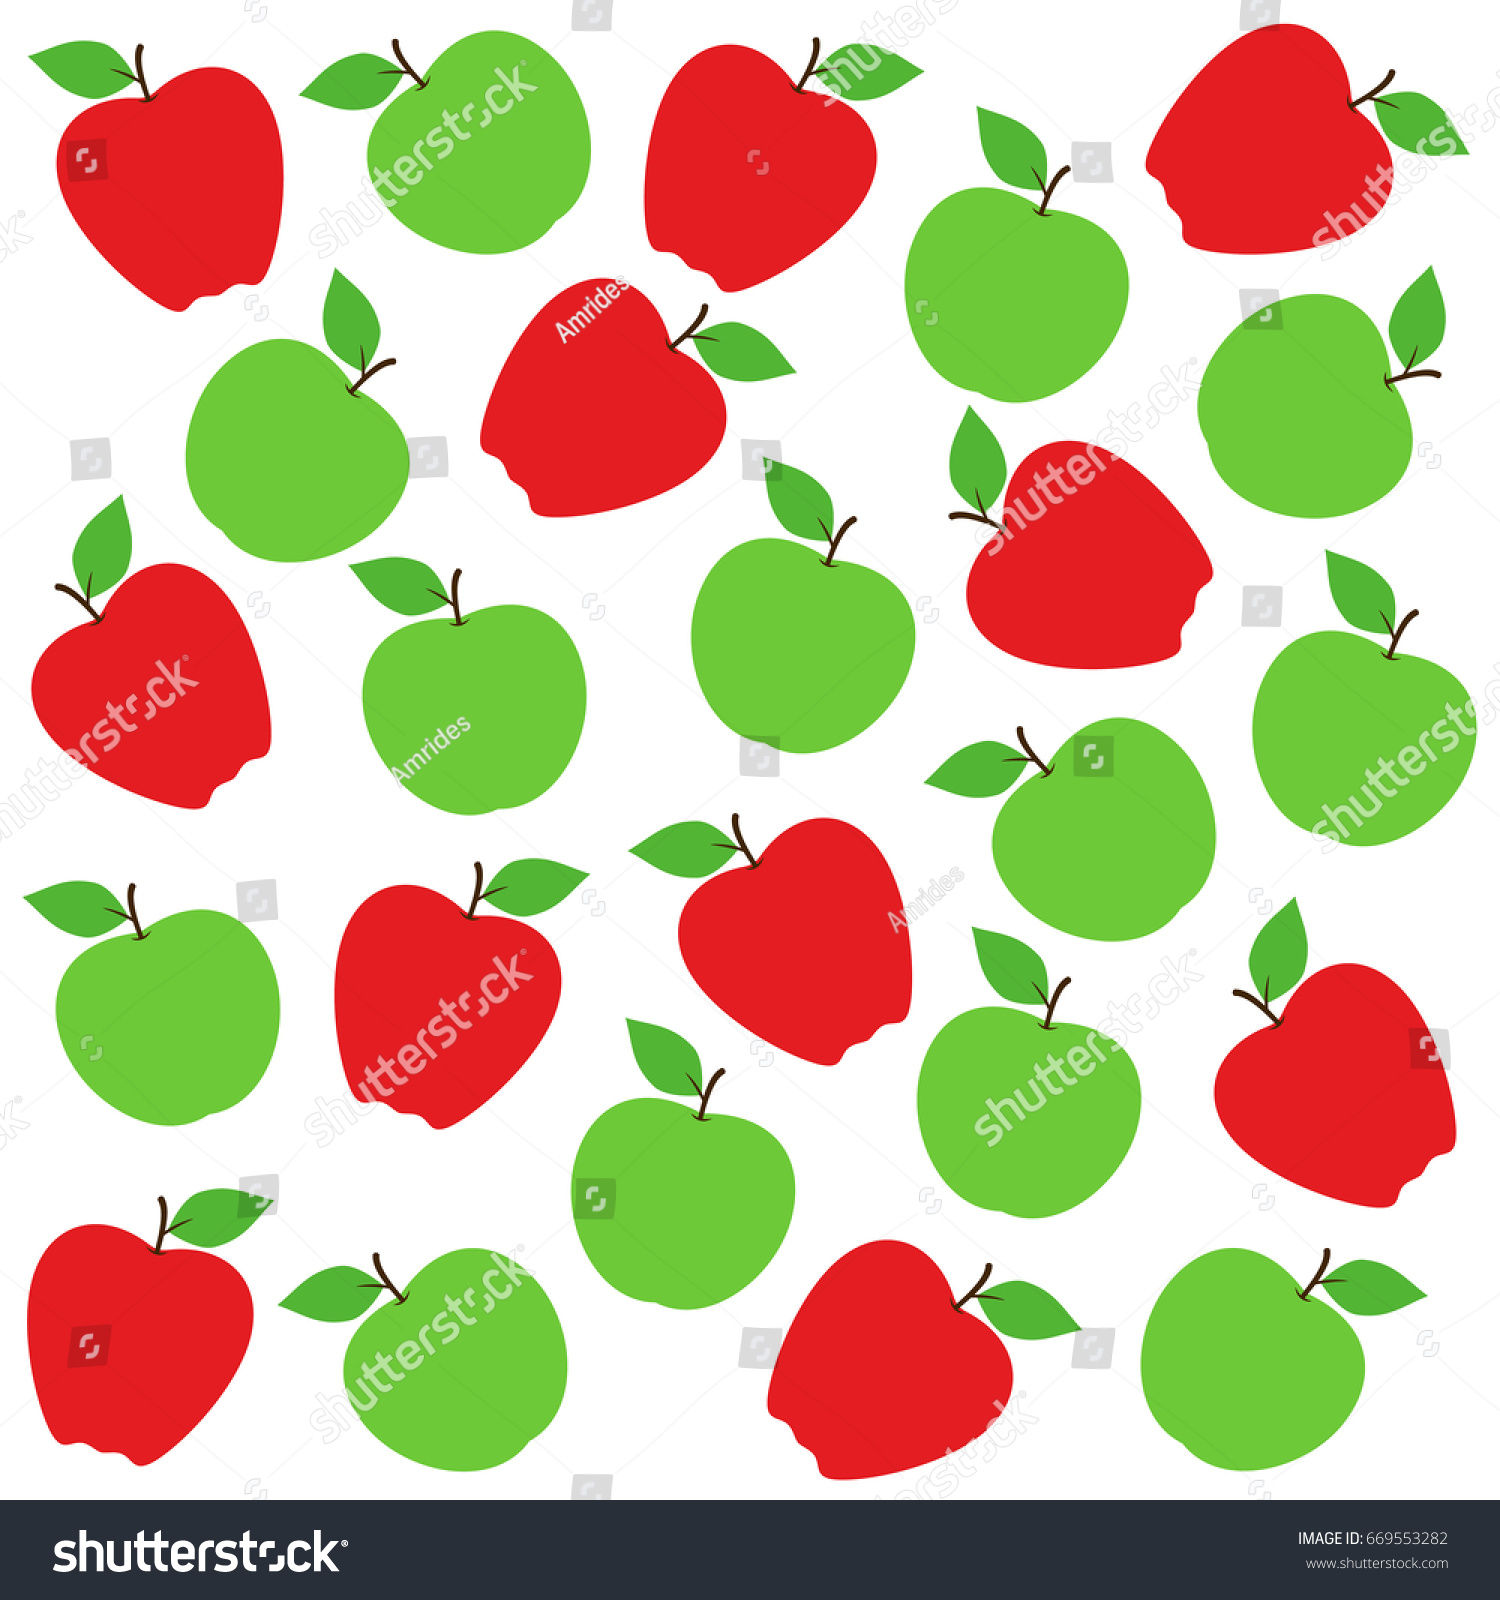 Wonderful Wallpaper Macbook Pattern - stock-vector-seamless-different-apple-pattern-background-wallpaper-isolated-on-white-background-669553282  You Should Have_8575.jpg